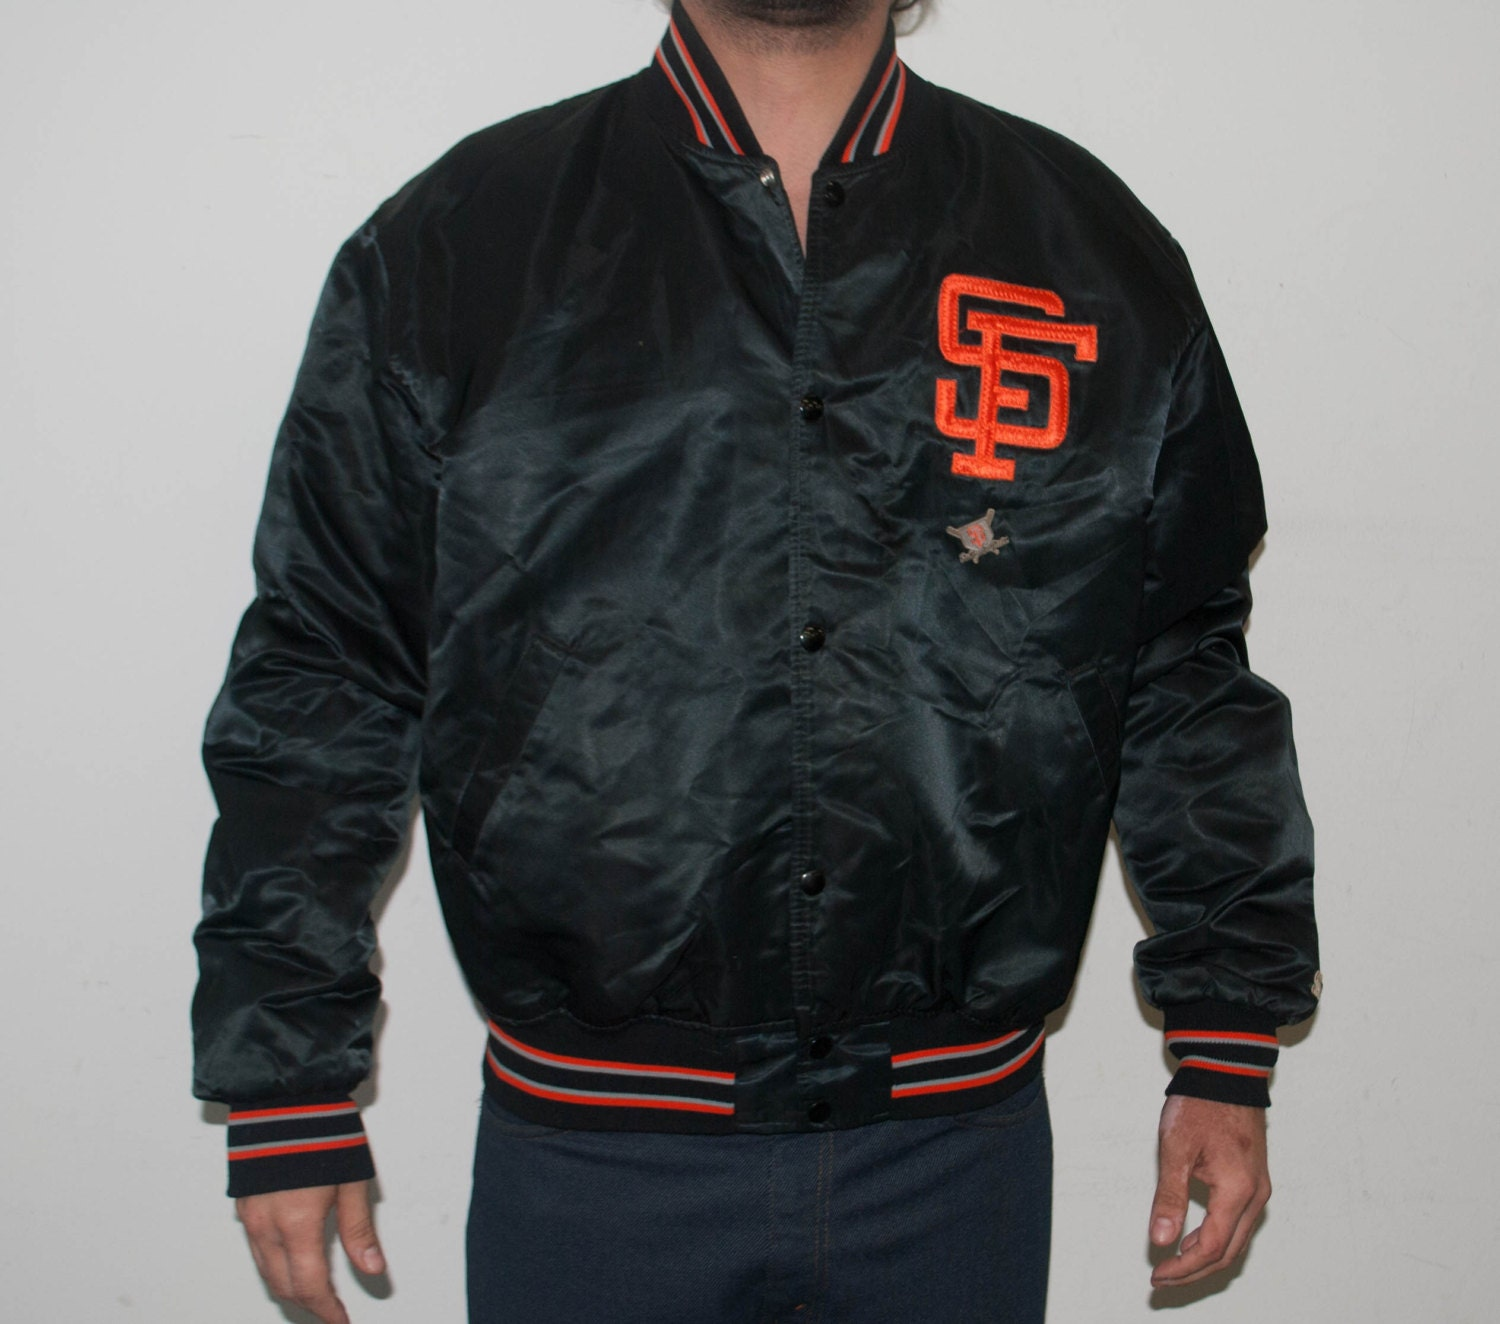 San Francisco Giants Jacket. Compare prices on San Francisco Giants Jackets from top online fan gear retailers. Save big money on your favorite team's jackets .